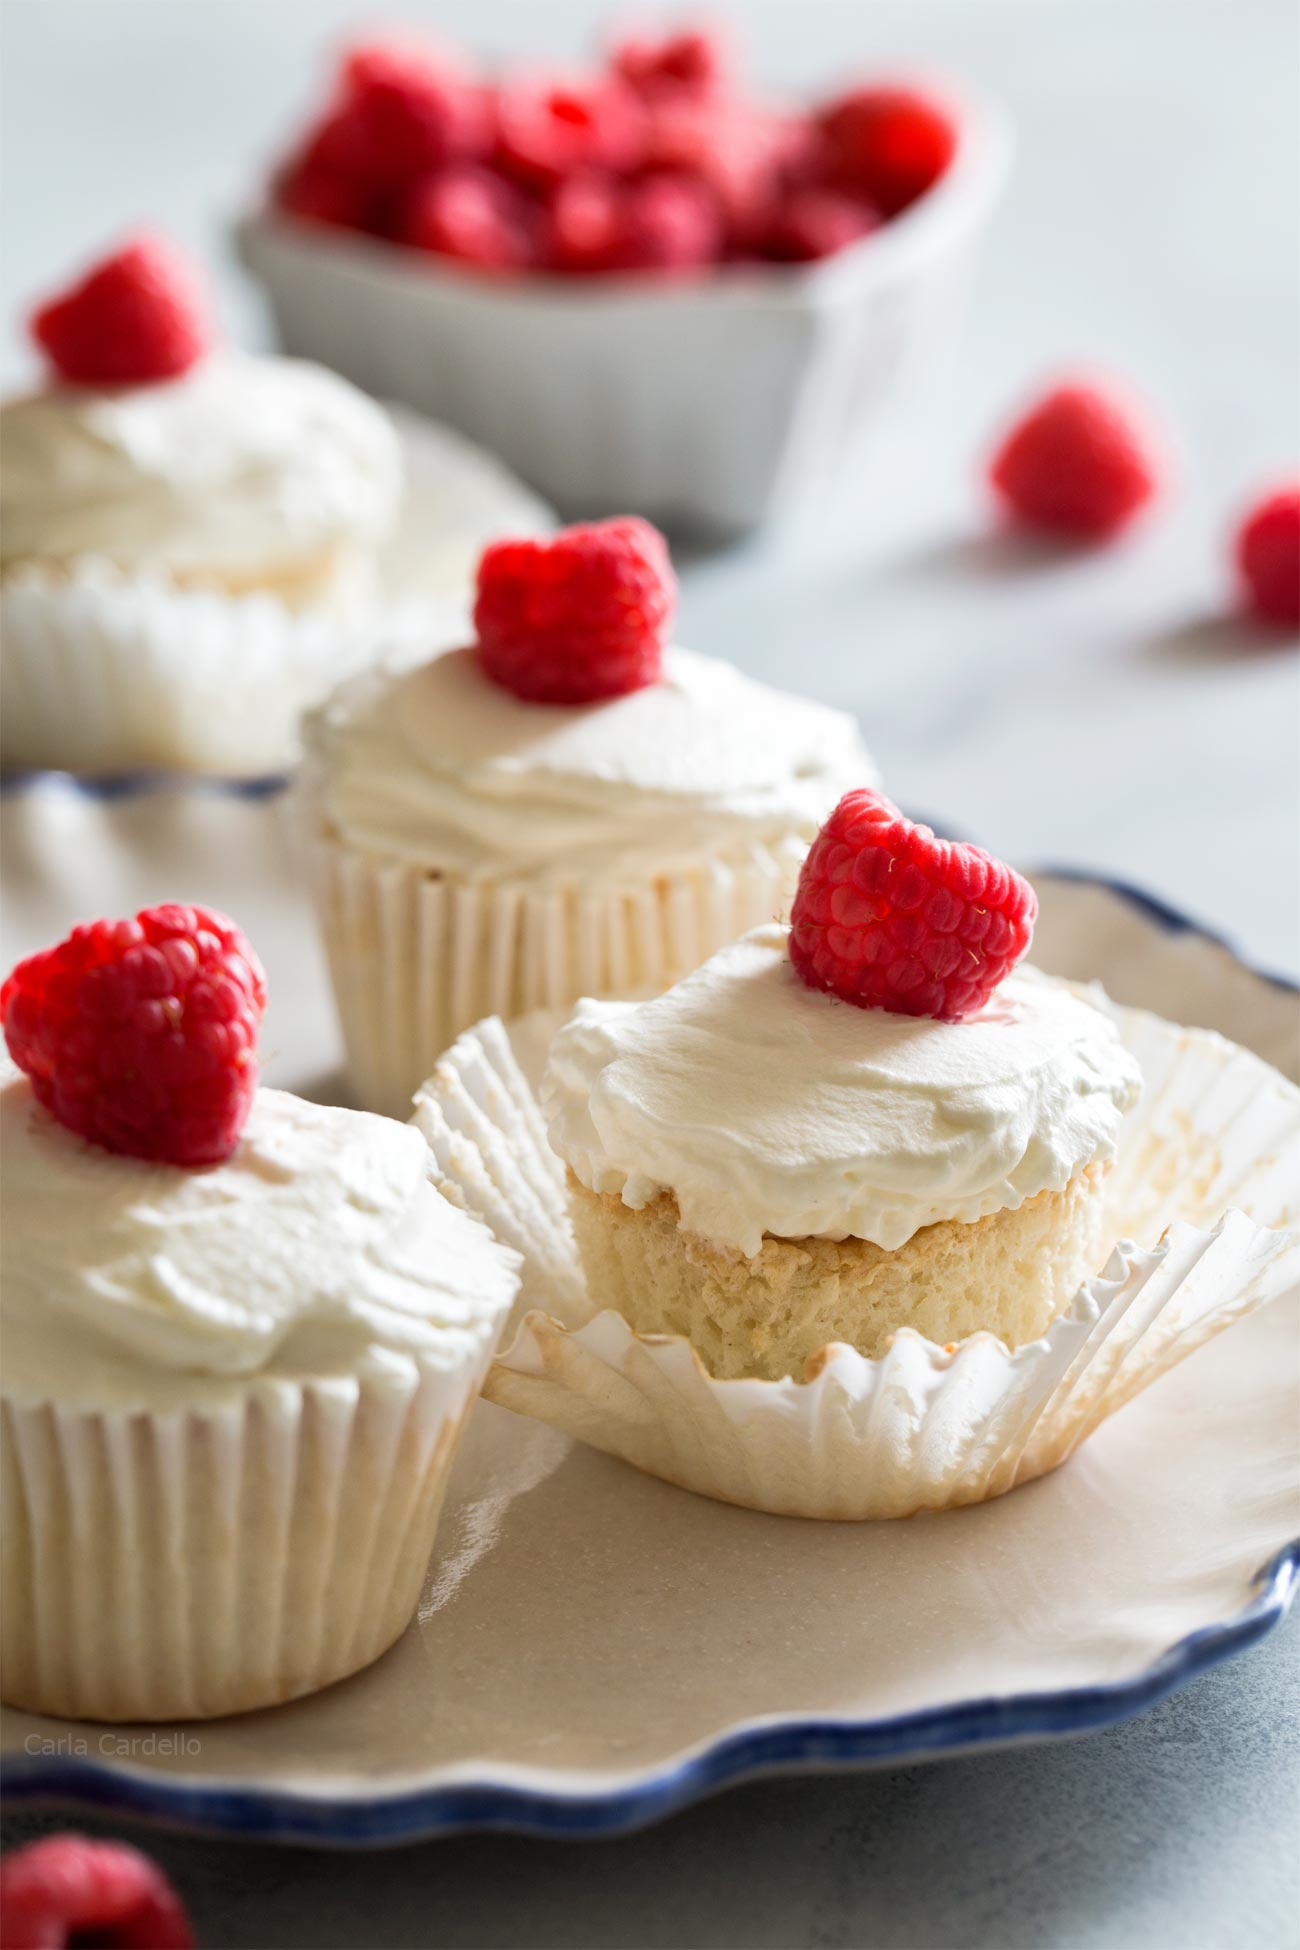 Small Batch Angel Food Cupcakes from scratch uses 2 egg whites and doesn't require a special tube cake pan to make them